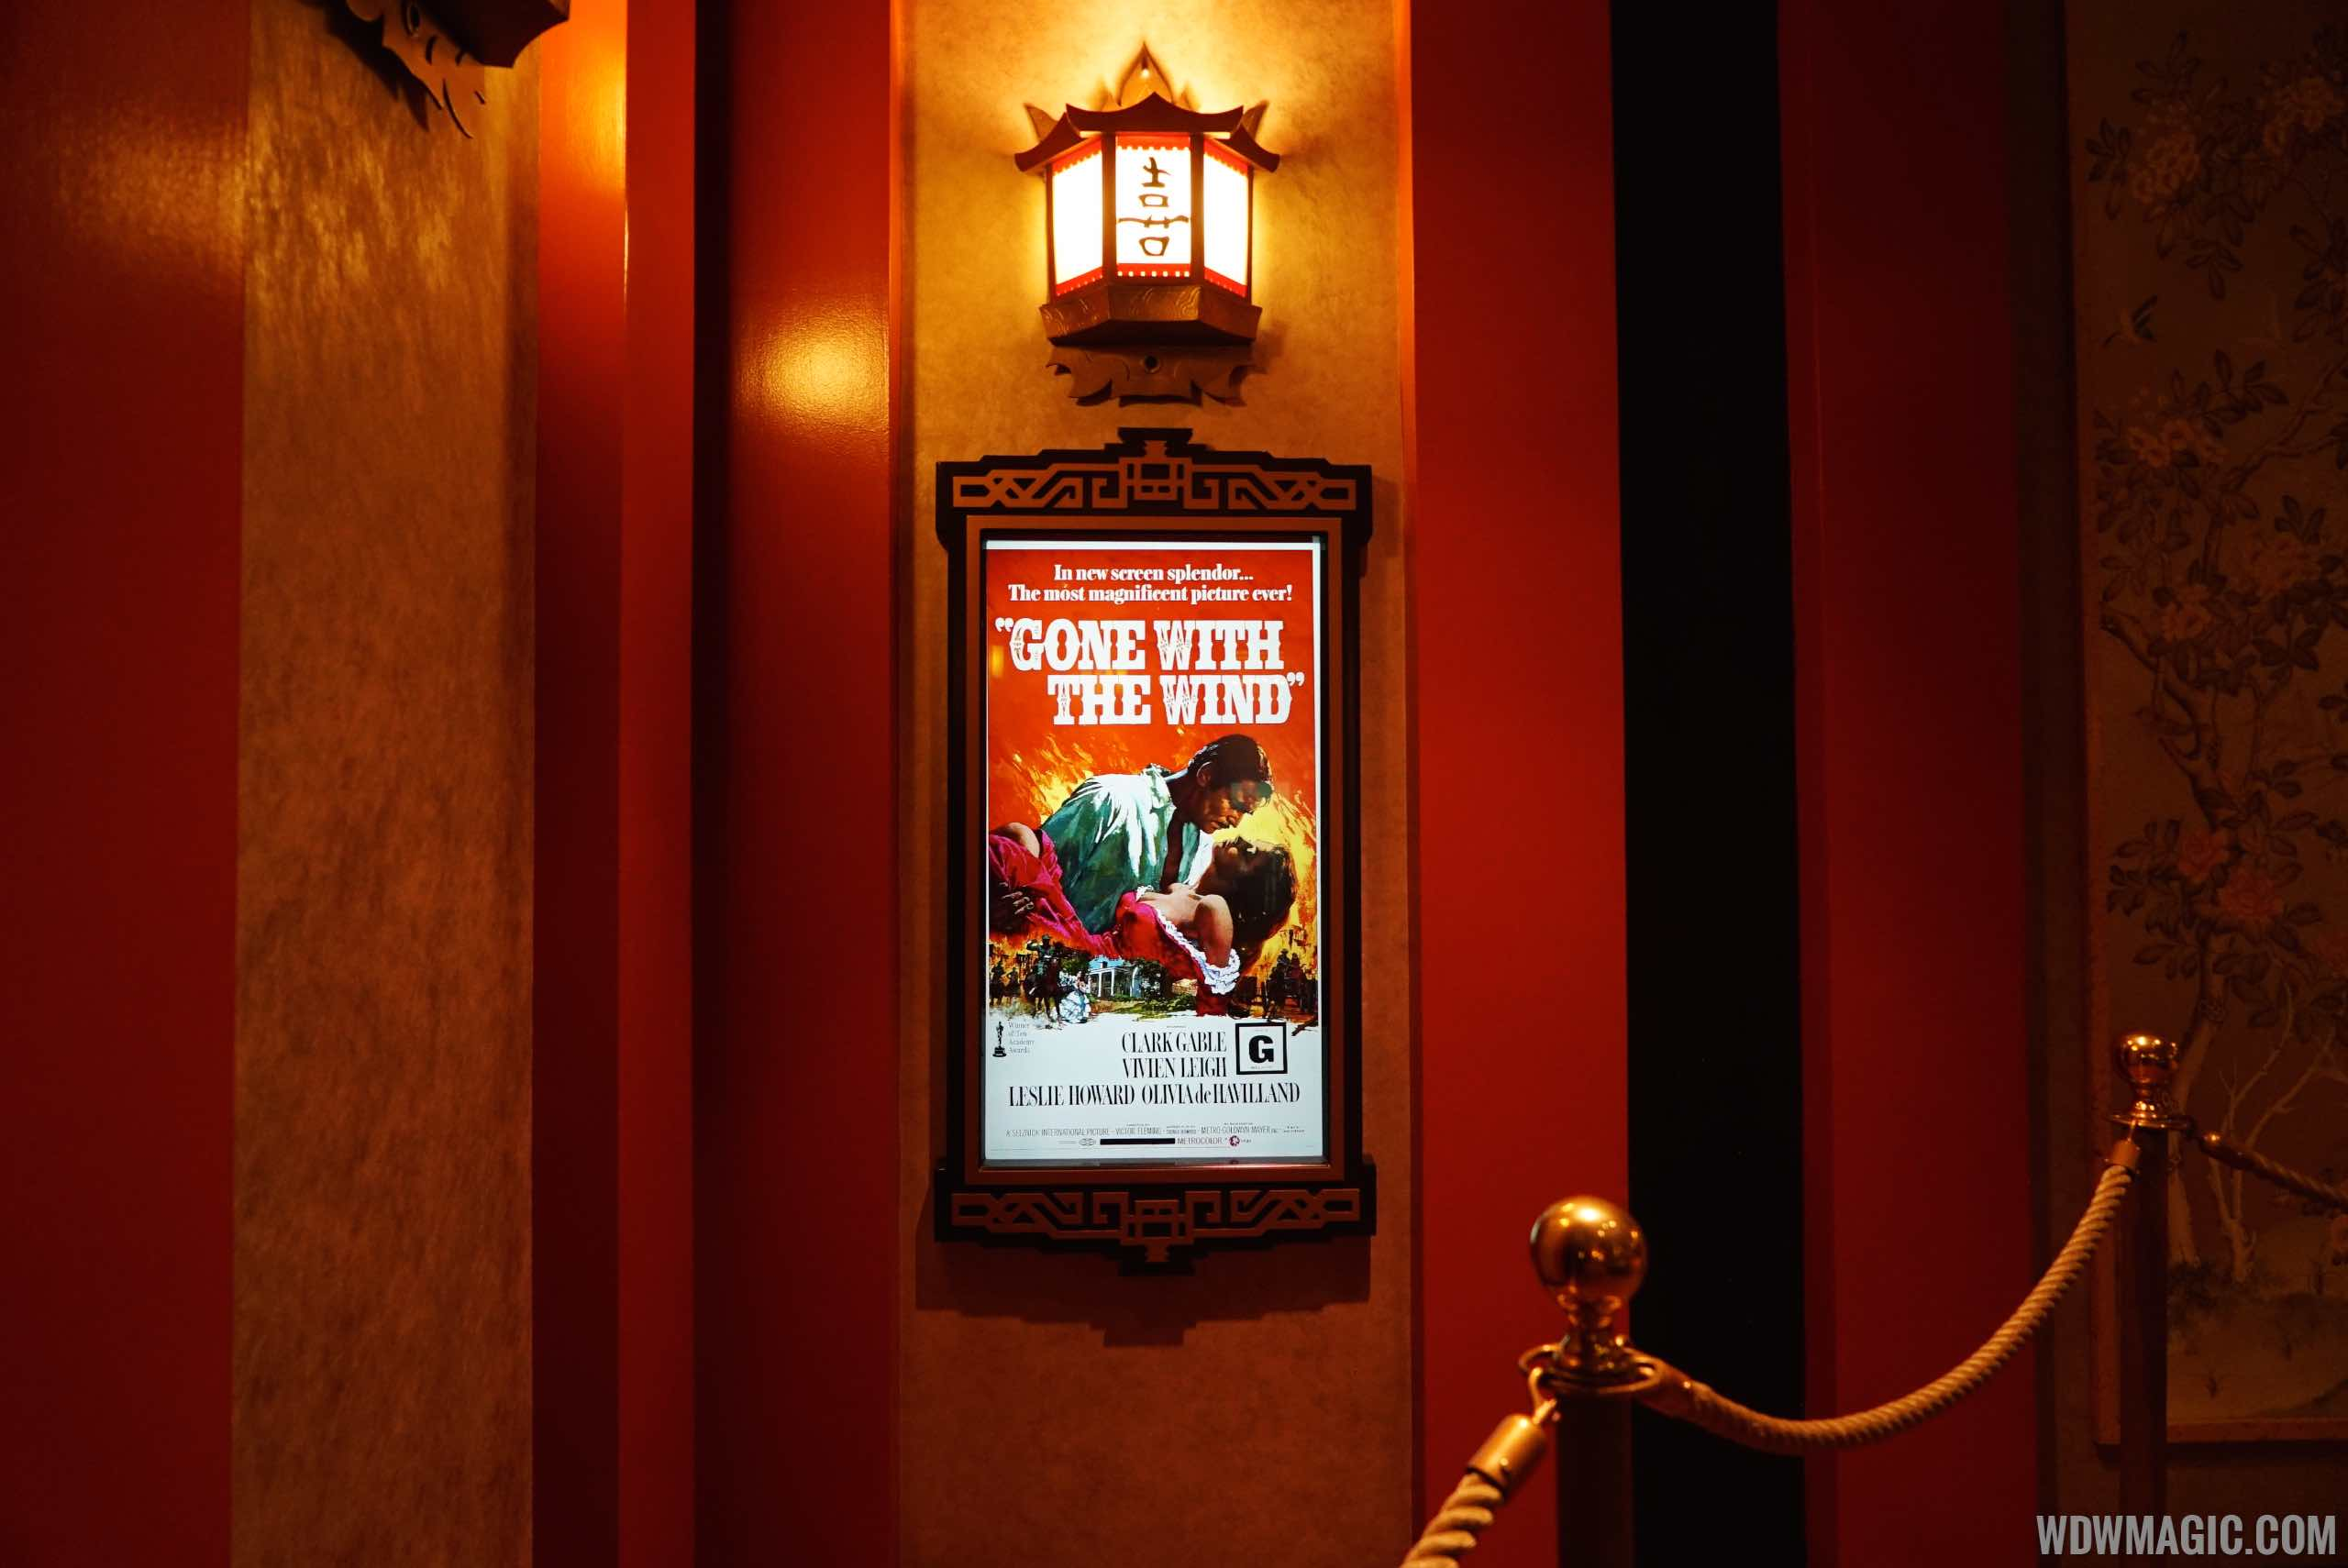 The Great Movie Ride TCM updates - Digital posters in the queue area lobby